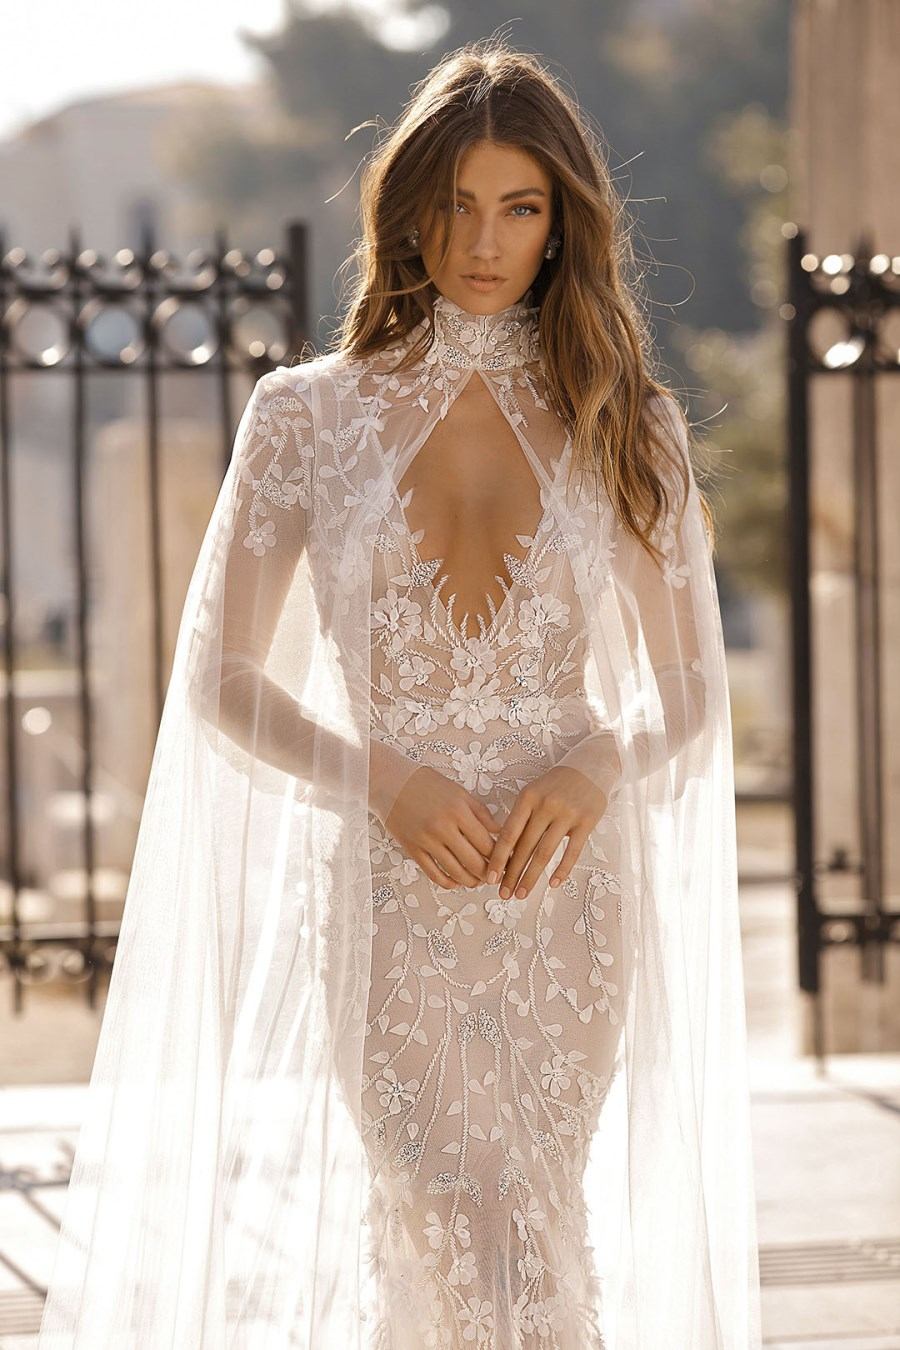 berta-wedding-dress-2019-1 (17)_2